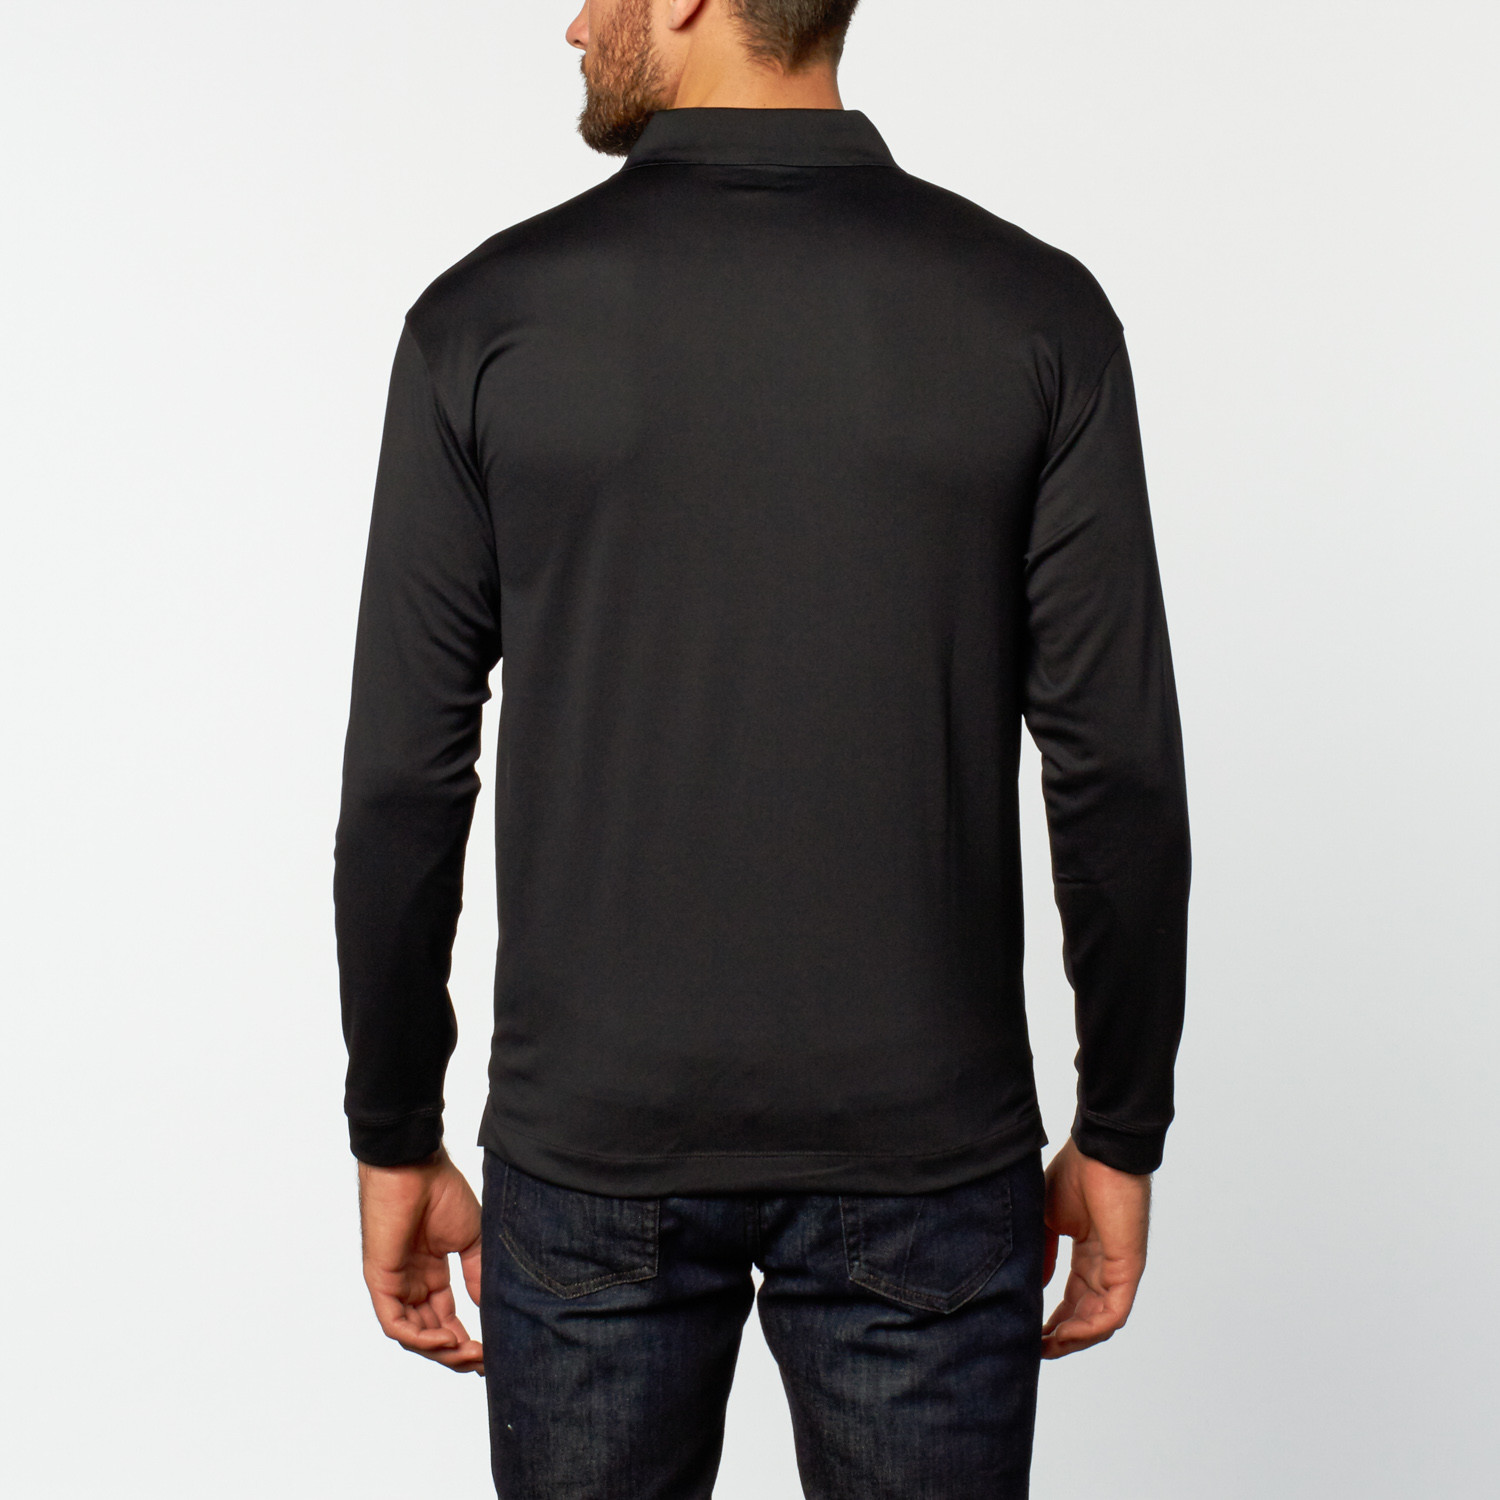 Nike long sleeve stretch polo black s mercedes benz for Mercedes benz wear